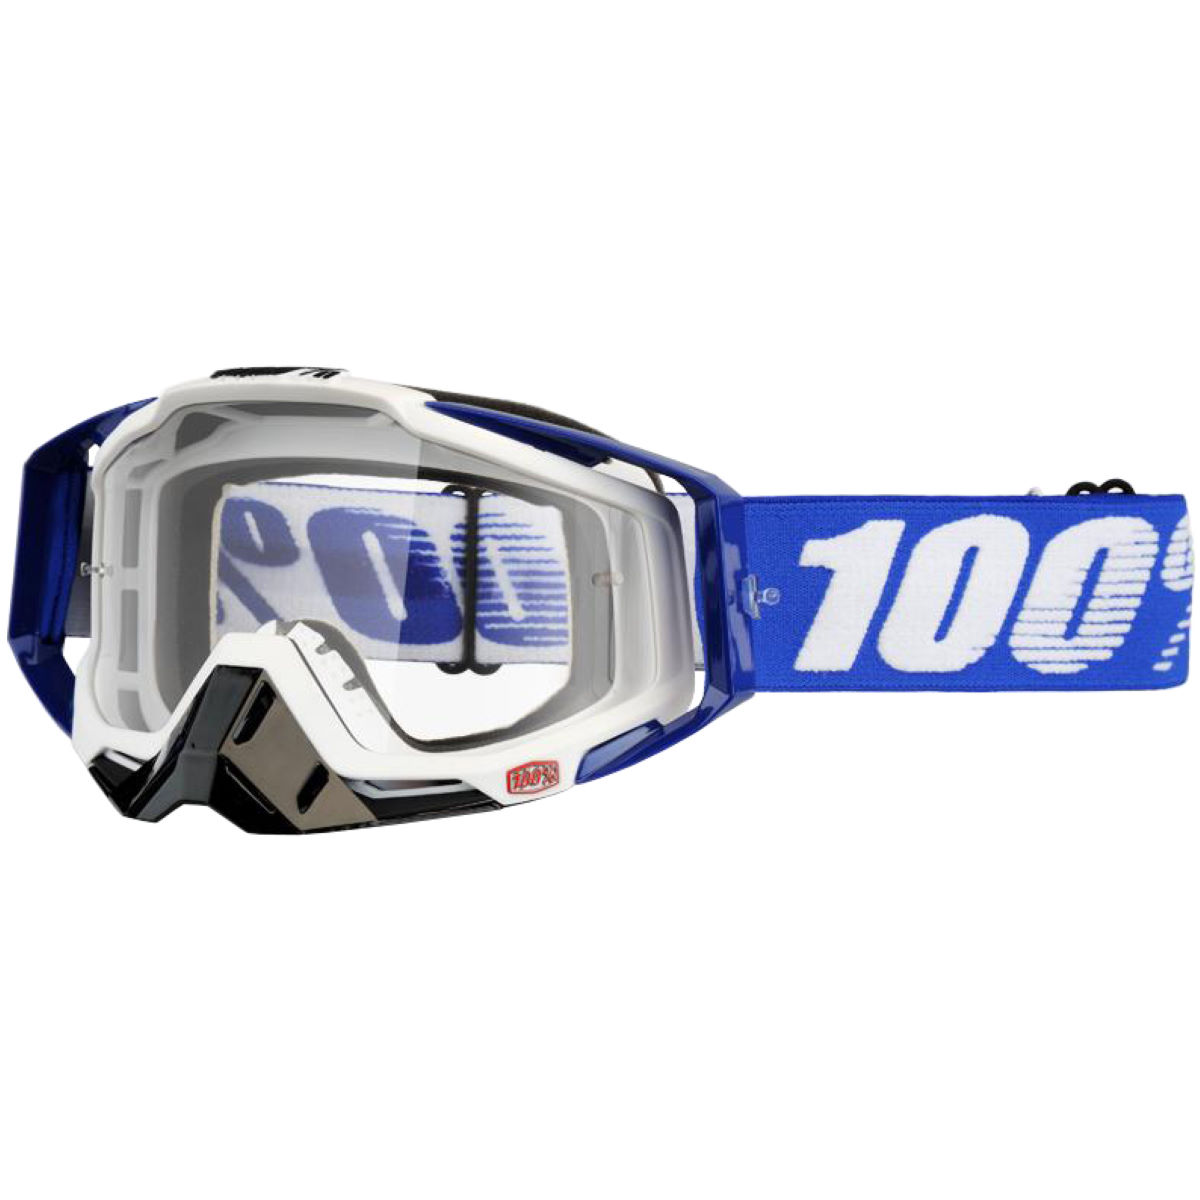 100% 100% Racecraft Goggle - Clear Lens   Cycling Goggles